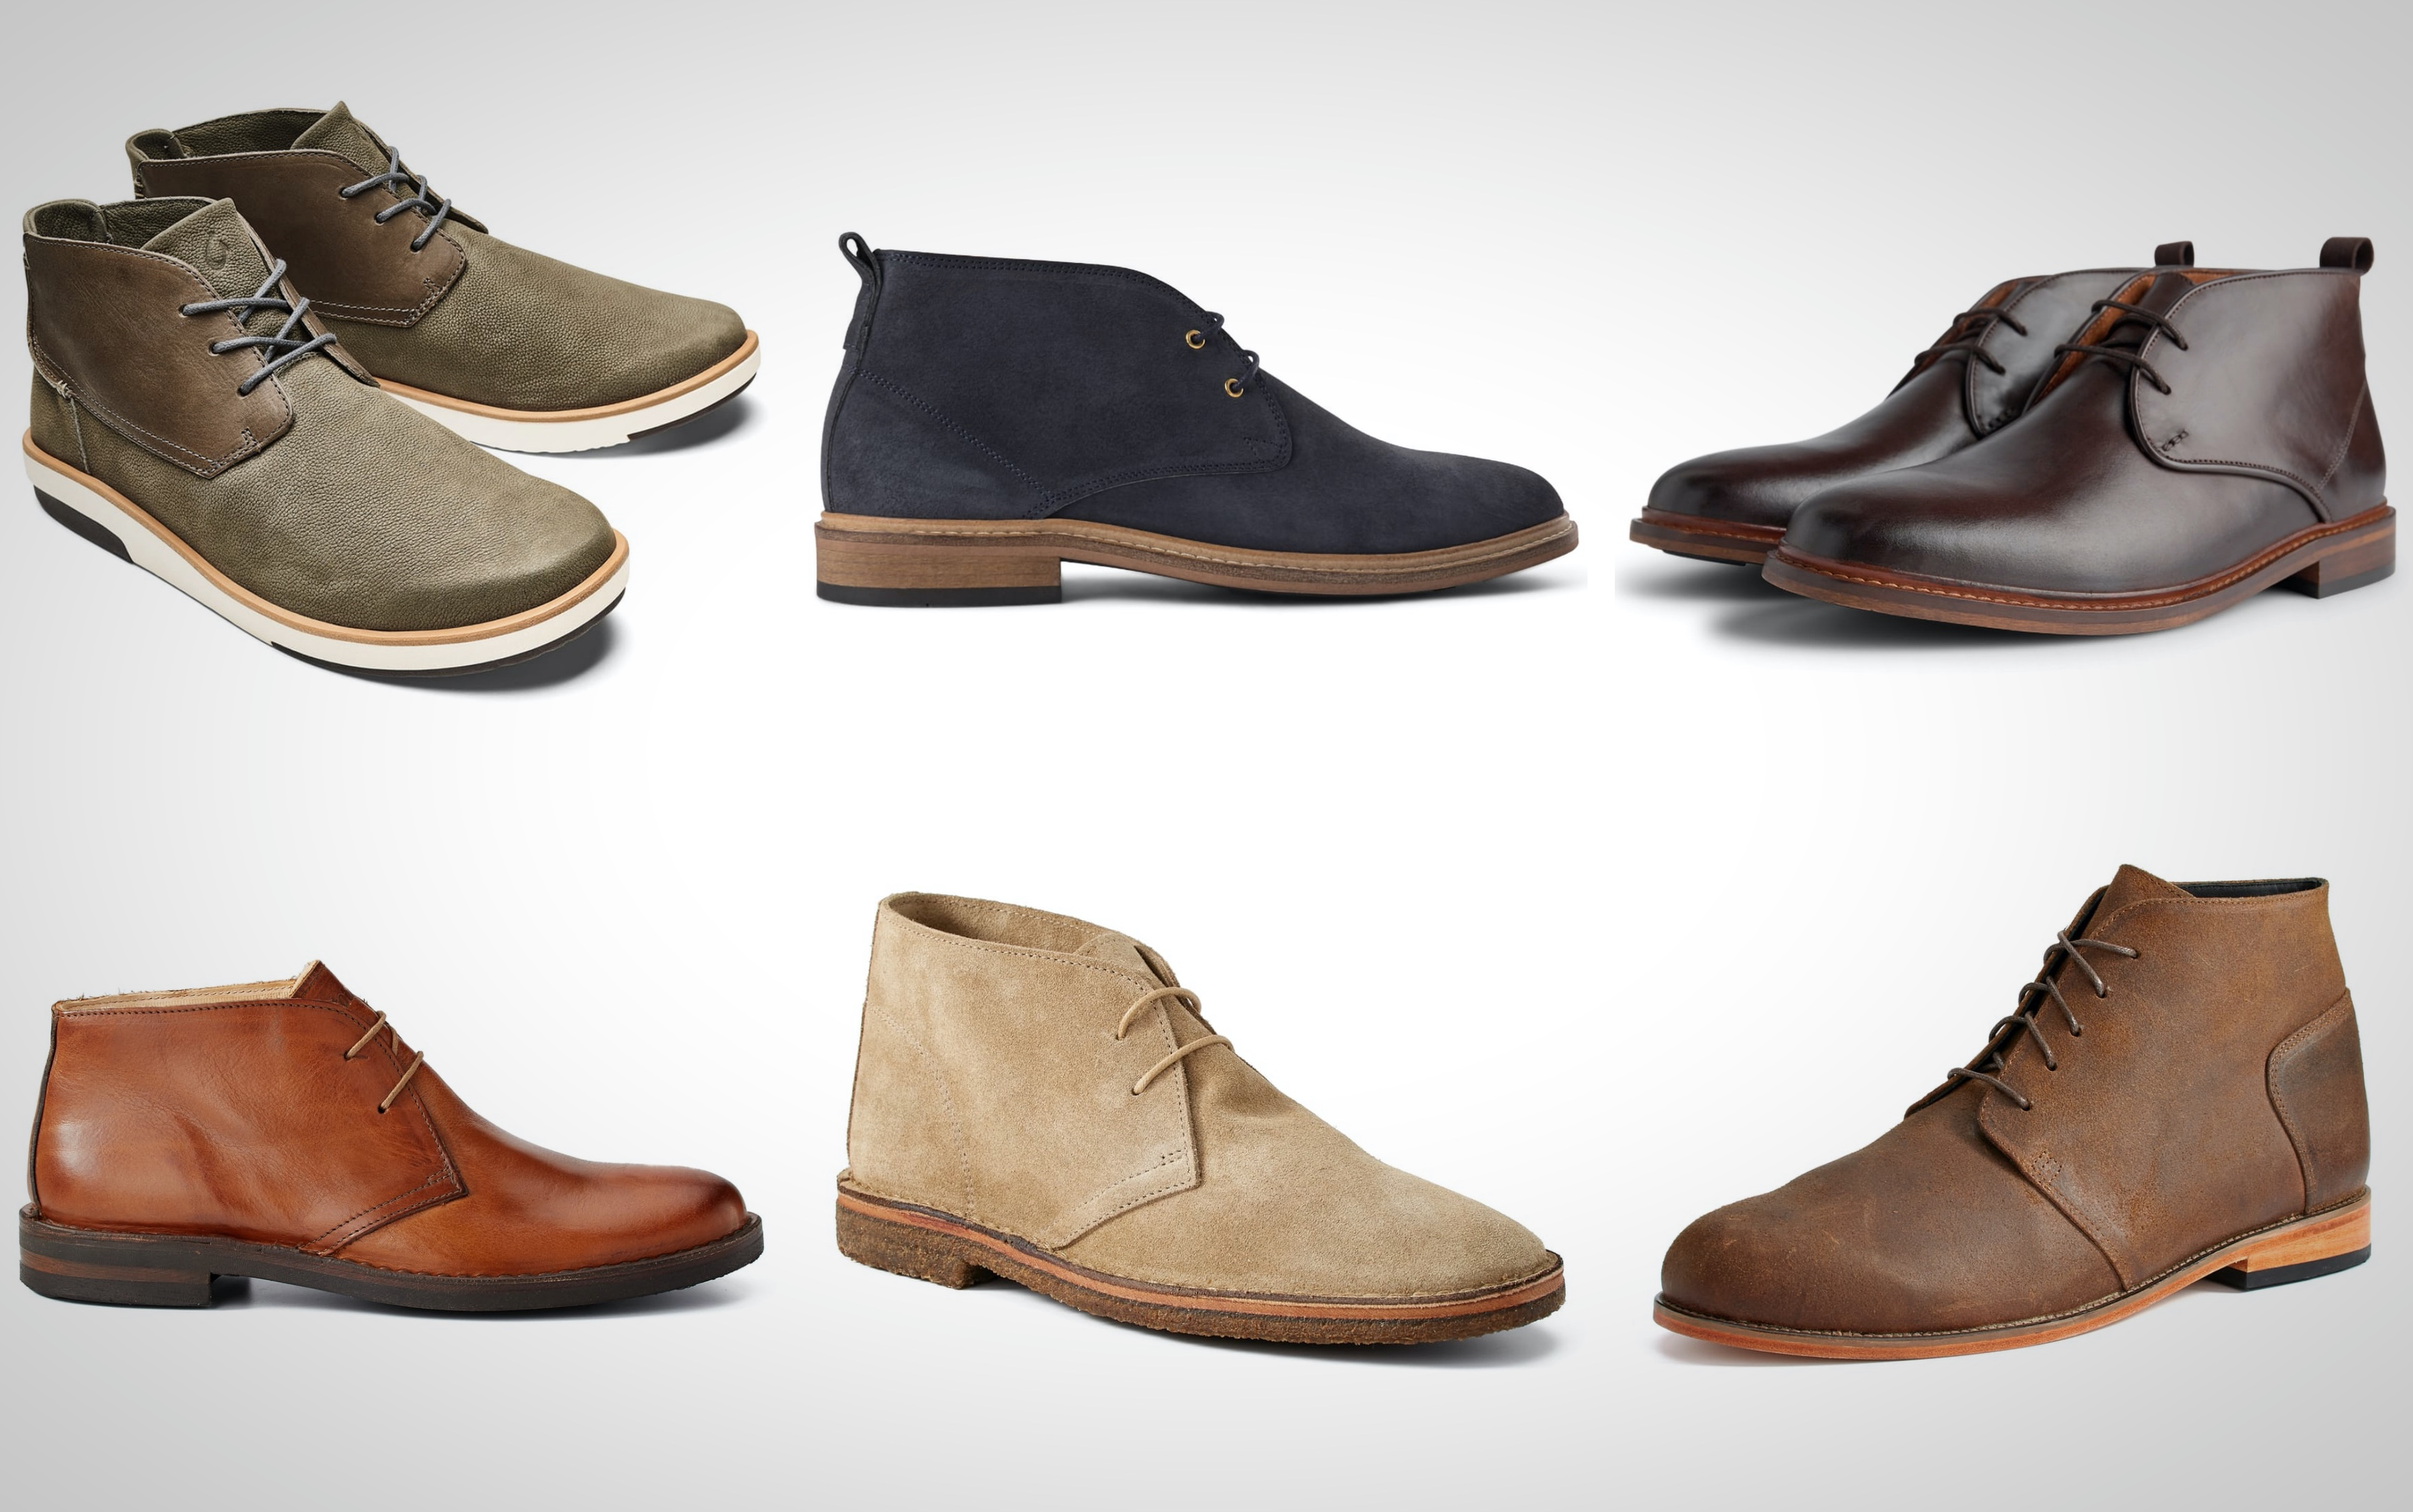 6 Of My Favorite Leather Chukka Boots